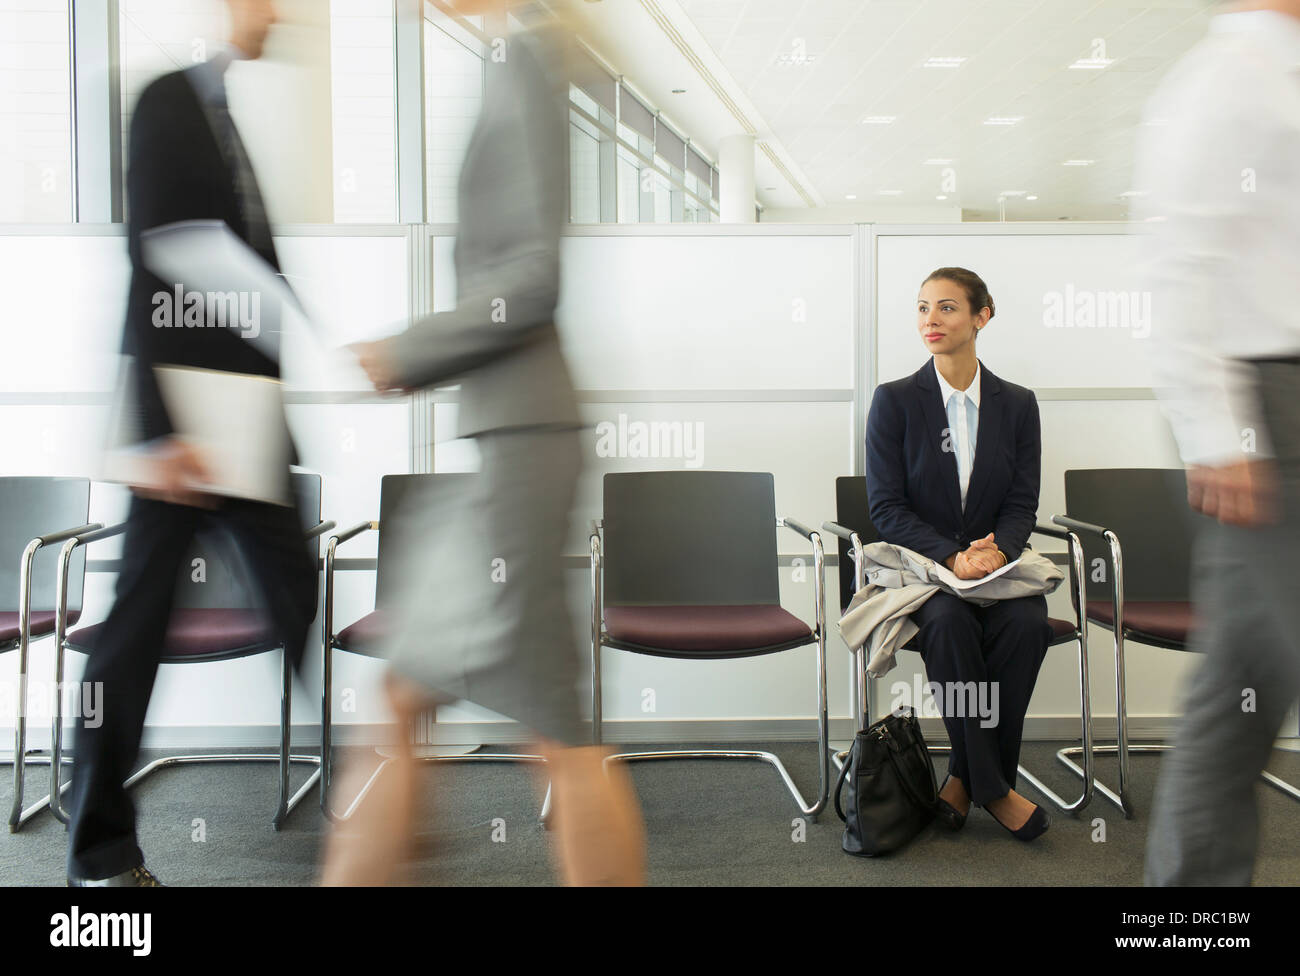 Businesswoman sitting in occupé l'aire d'attente Photo Stock